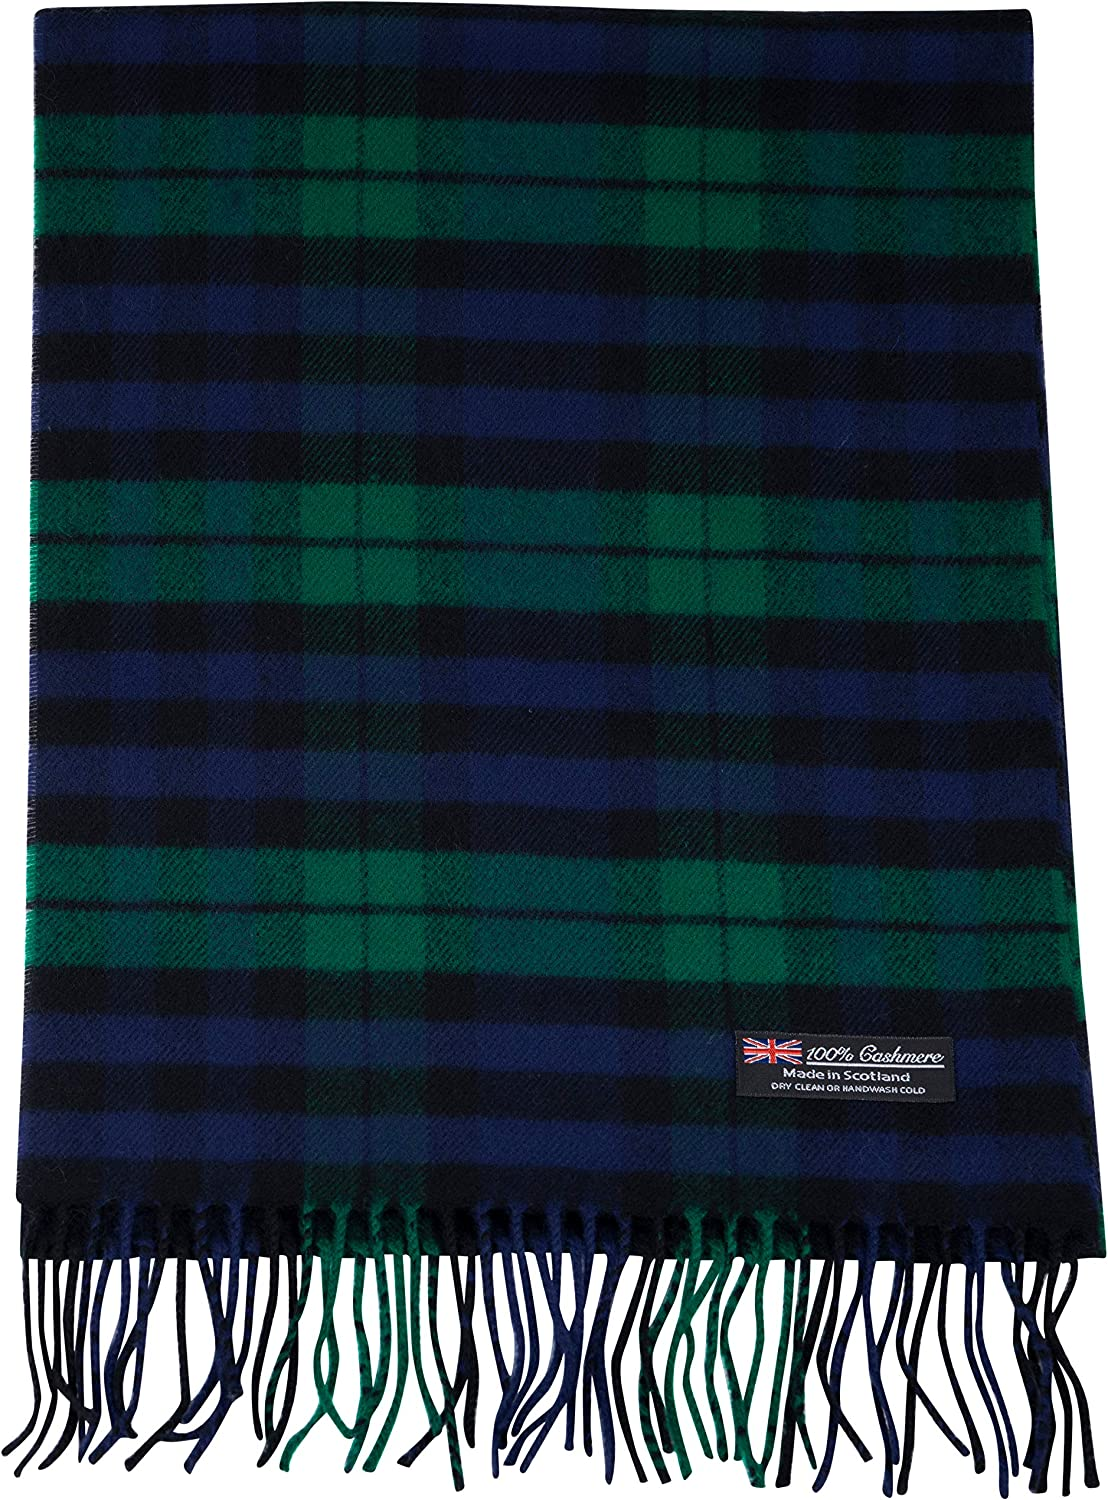 2 PLY 100% Cashmere Scarf Elegant Collection Made in Scotland Wool Solid Plaid Tartan Men Women Scarf